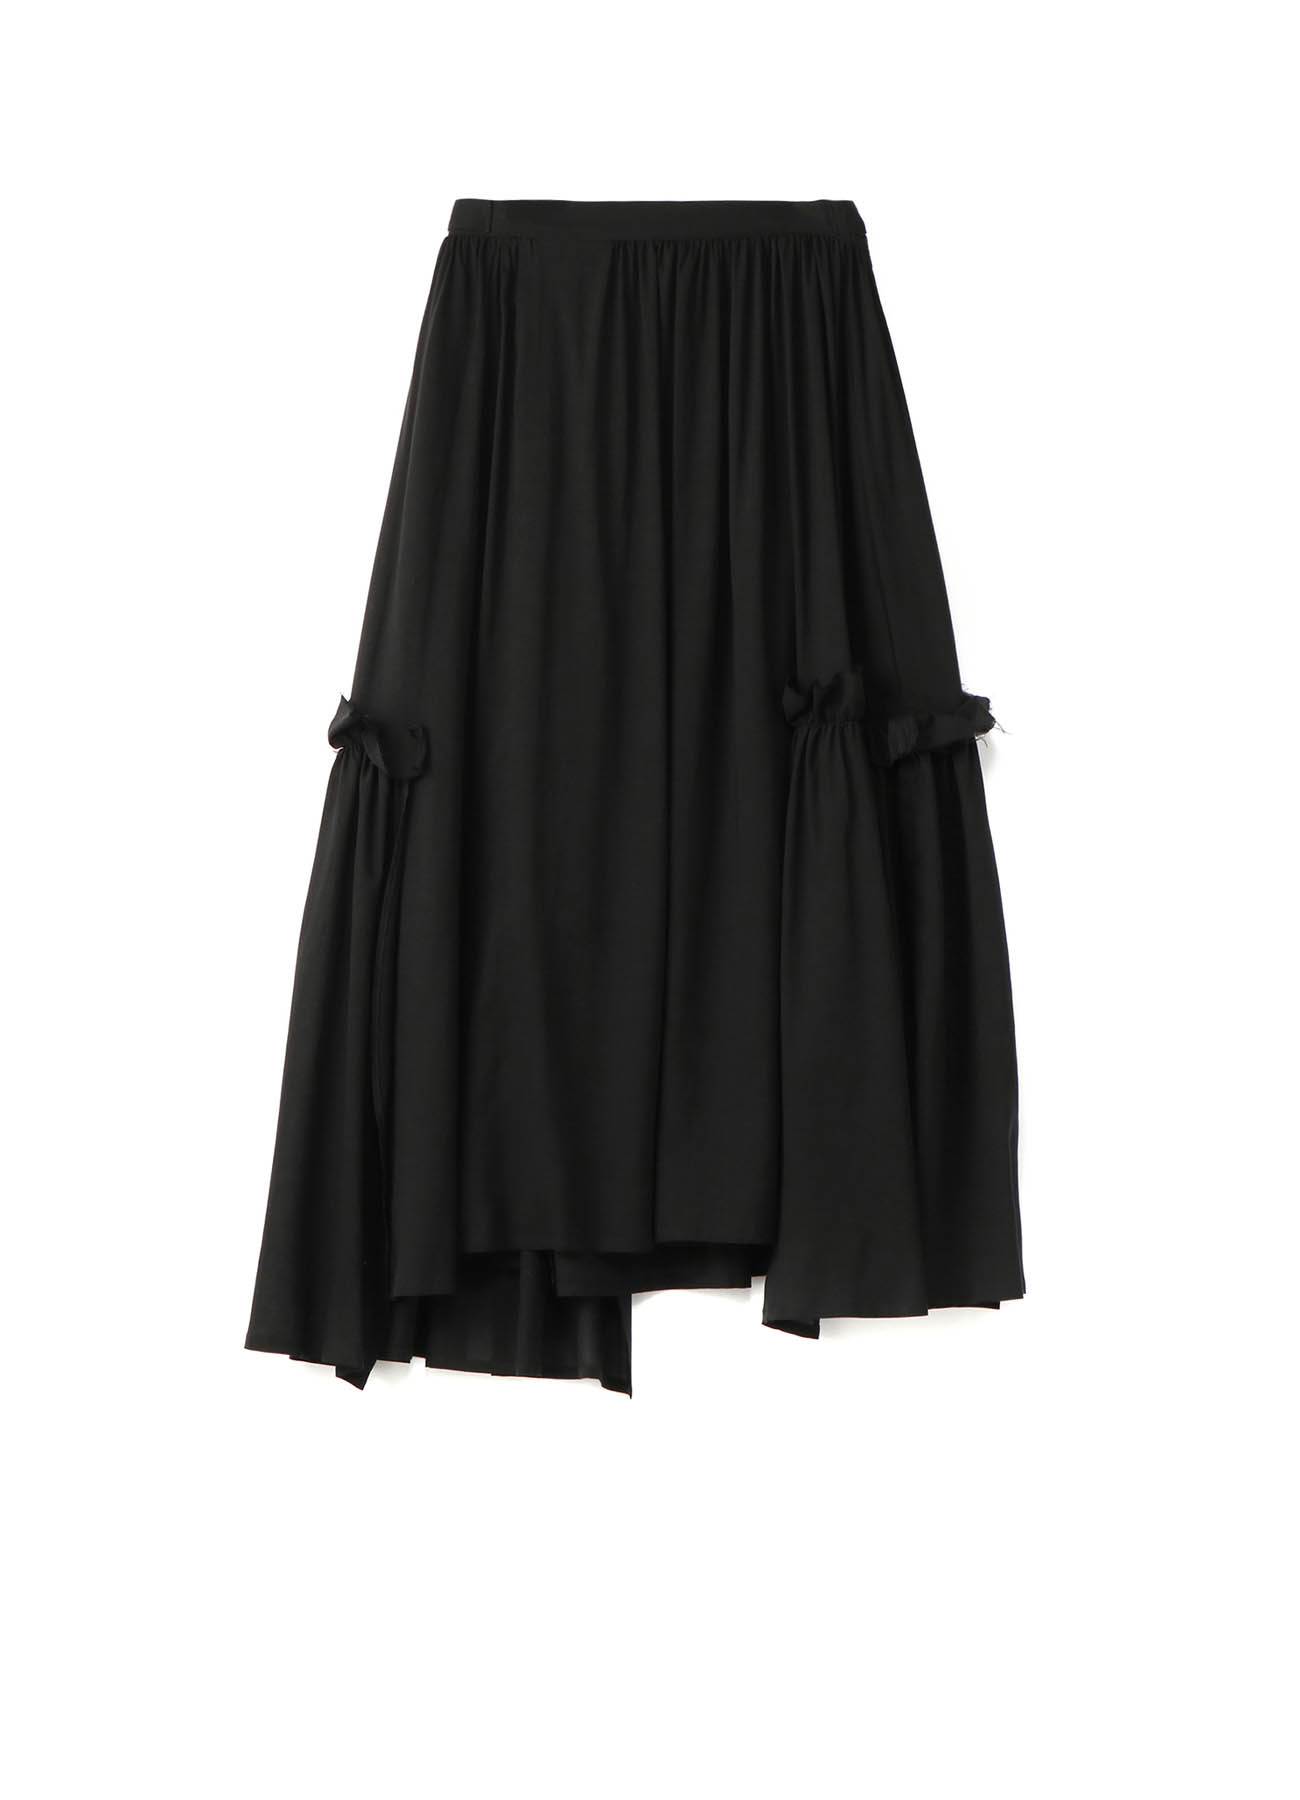 TEN/LAWN B/GATHER SKIRT